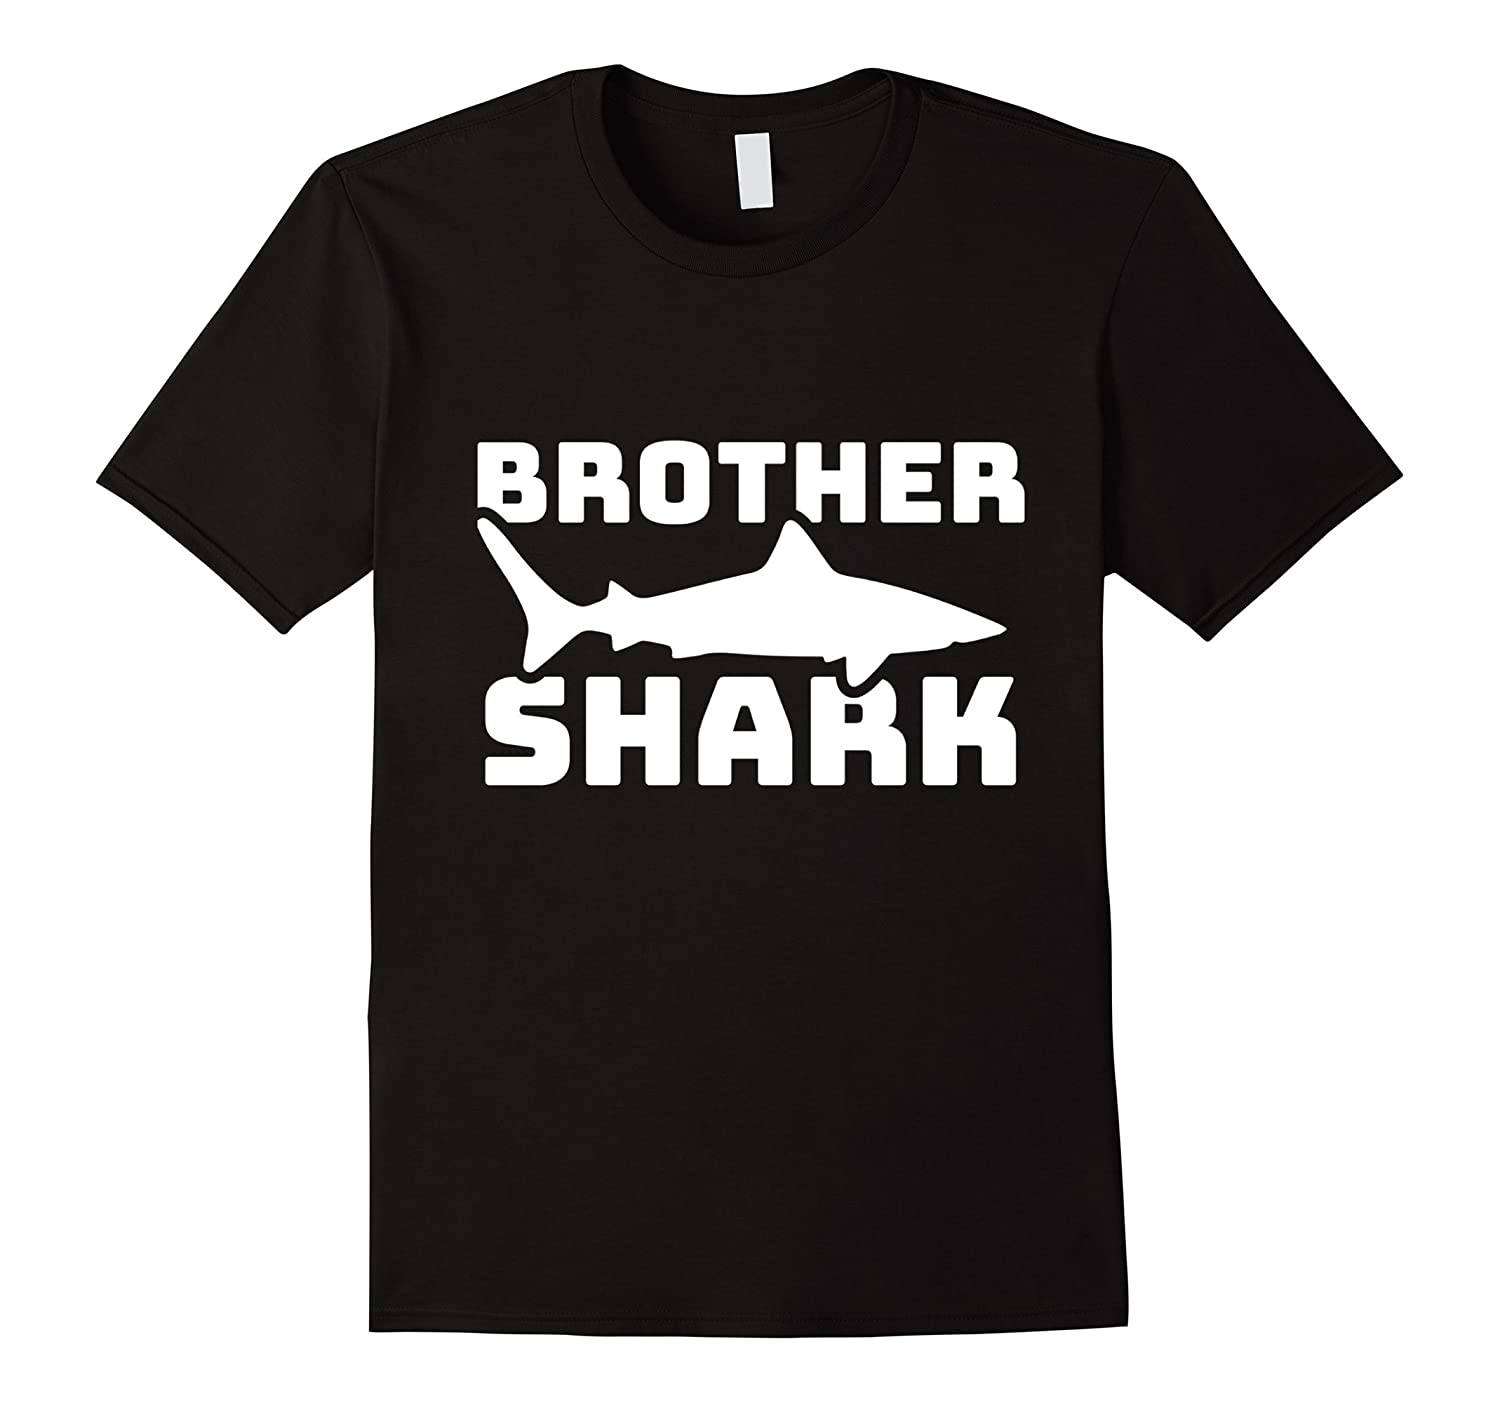 Brother Shark, Part of Matching Family tribe set